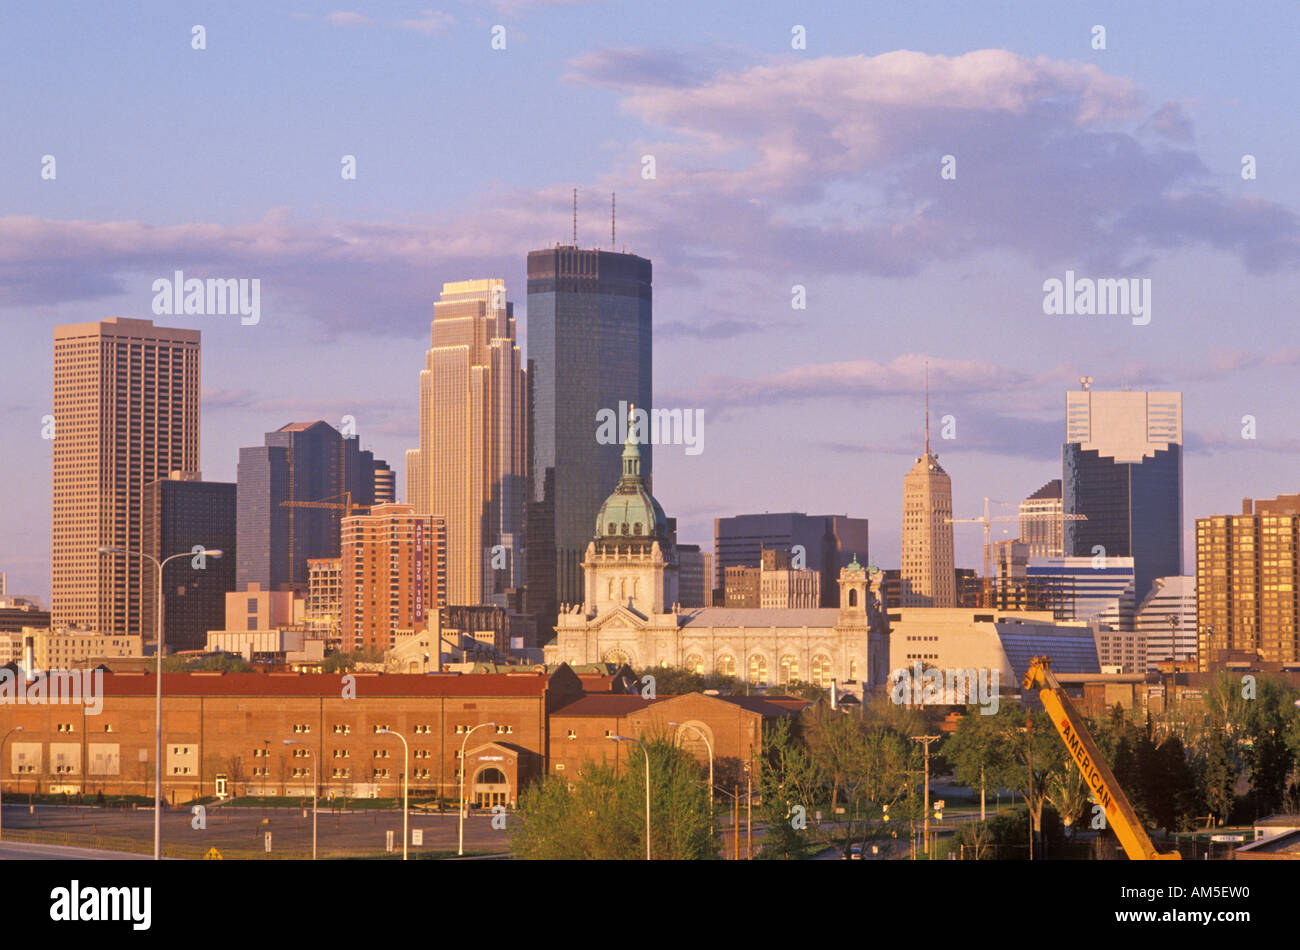 Minneapolis MN skyline - Stock Image